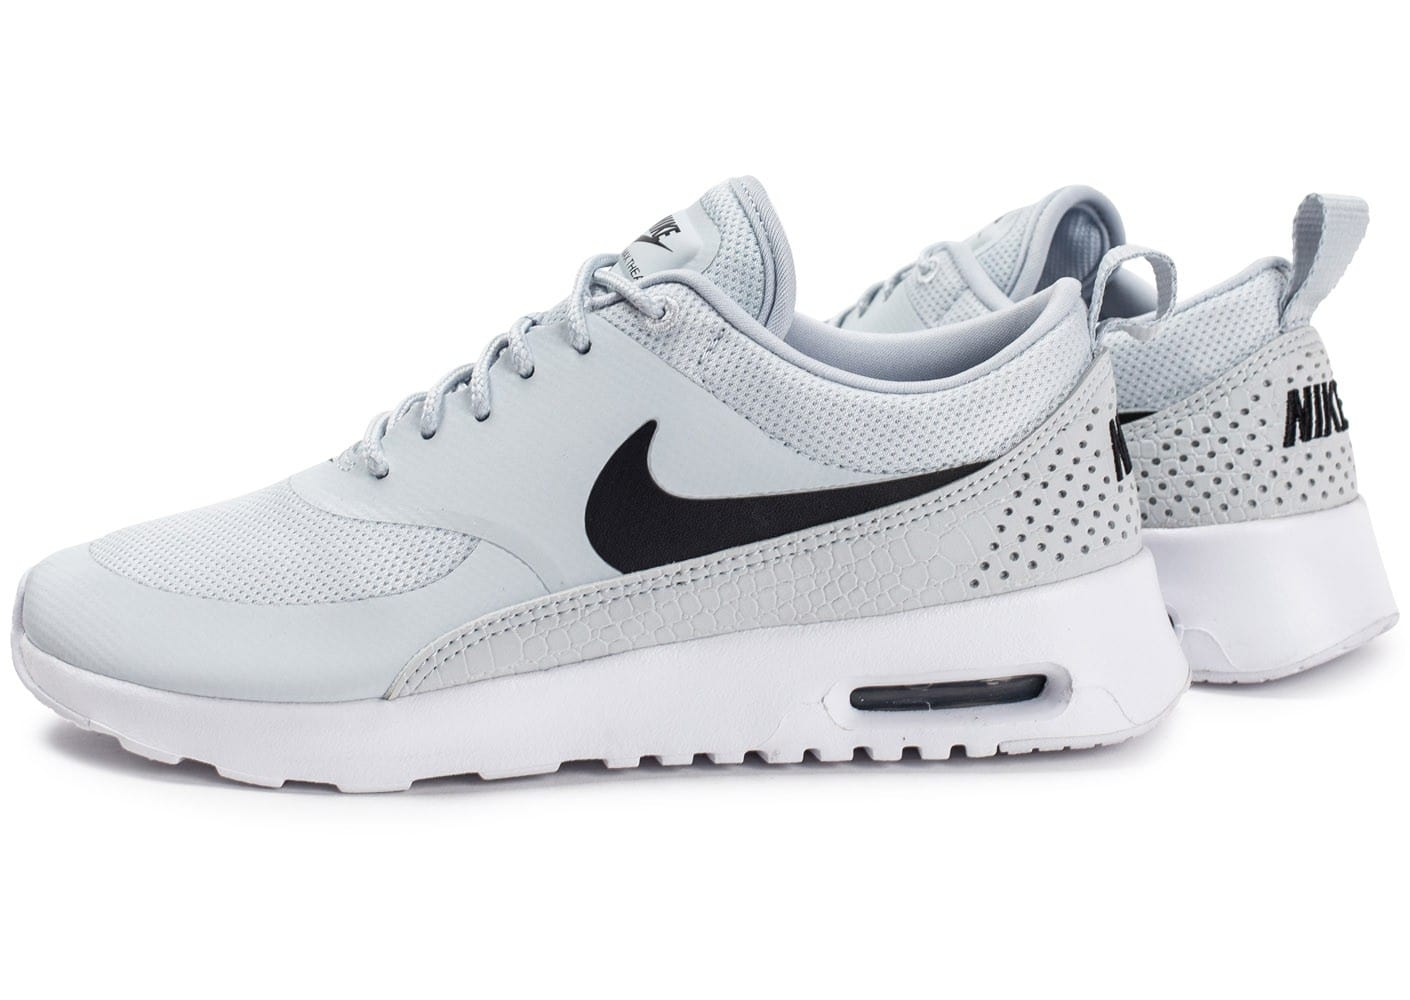 Nike Air Max Thea W grise et noire Chaussures Baskets